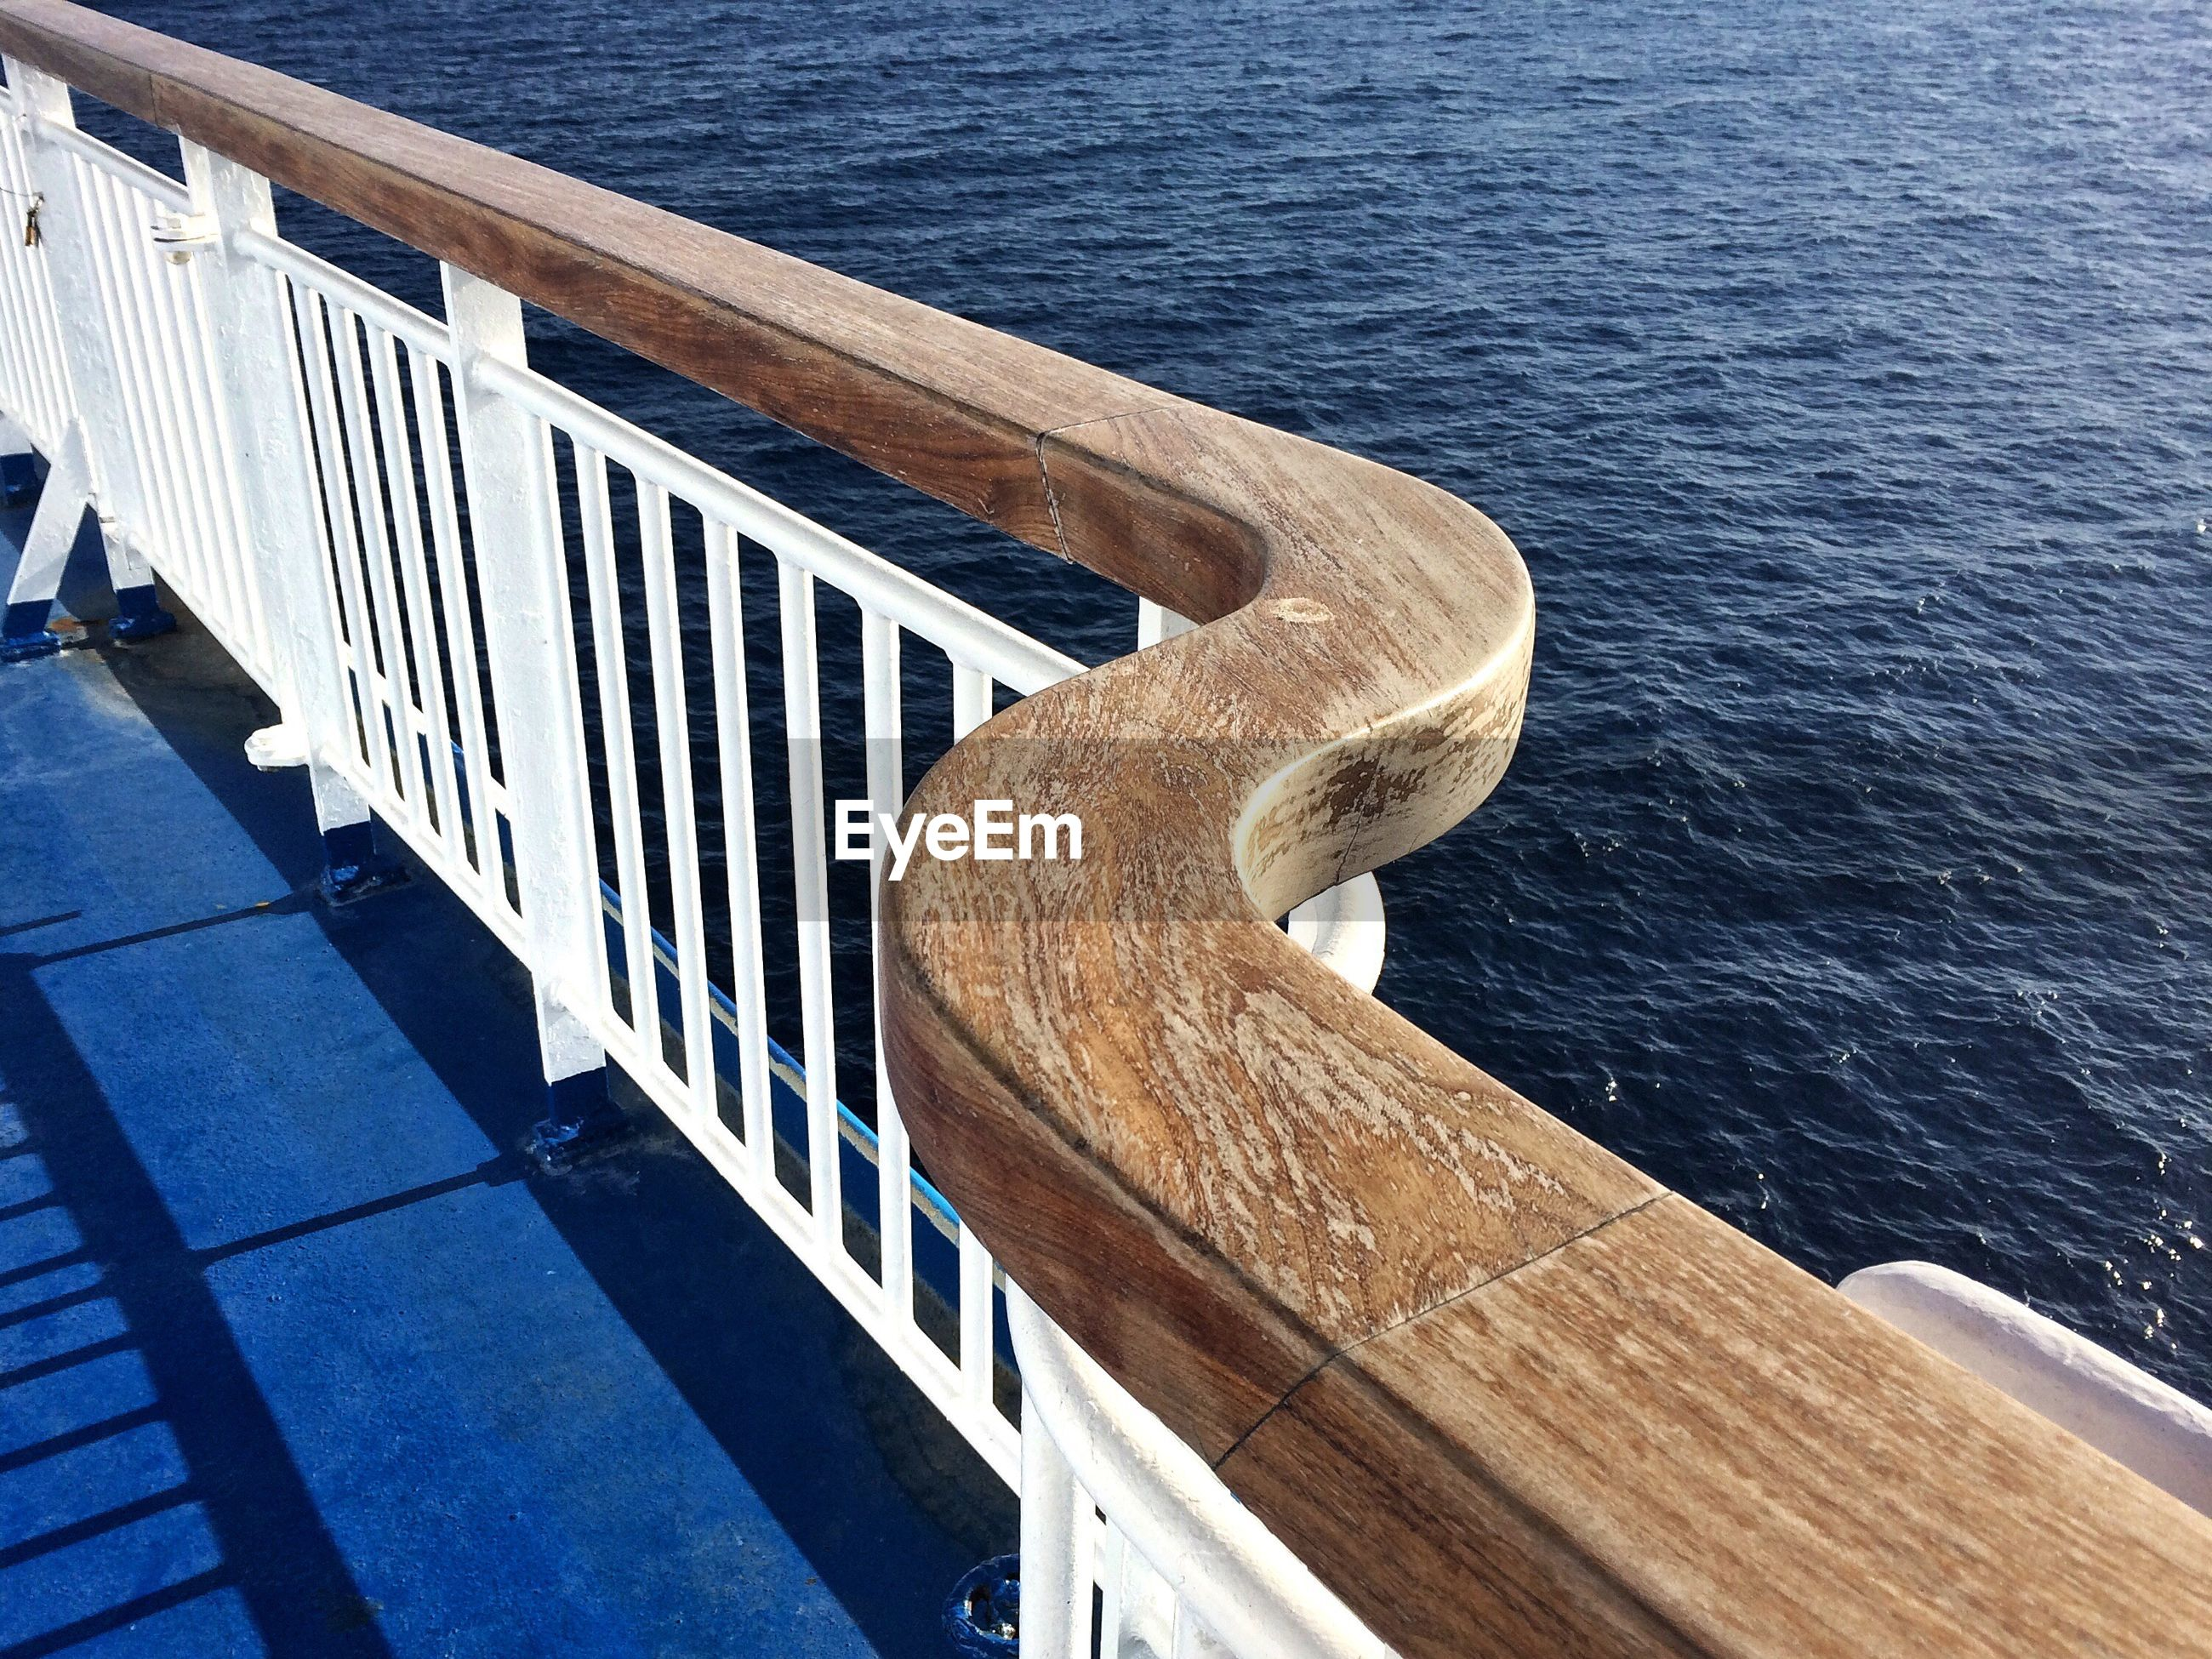 HIGH ANGLE VIEW OF WOODEN RAILING AGAINST SEA